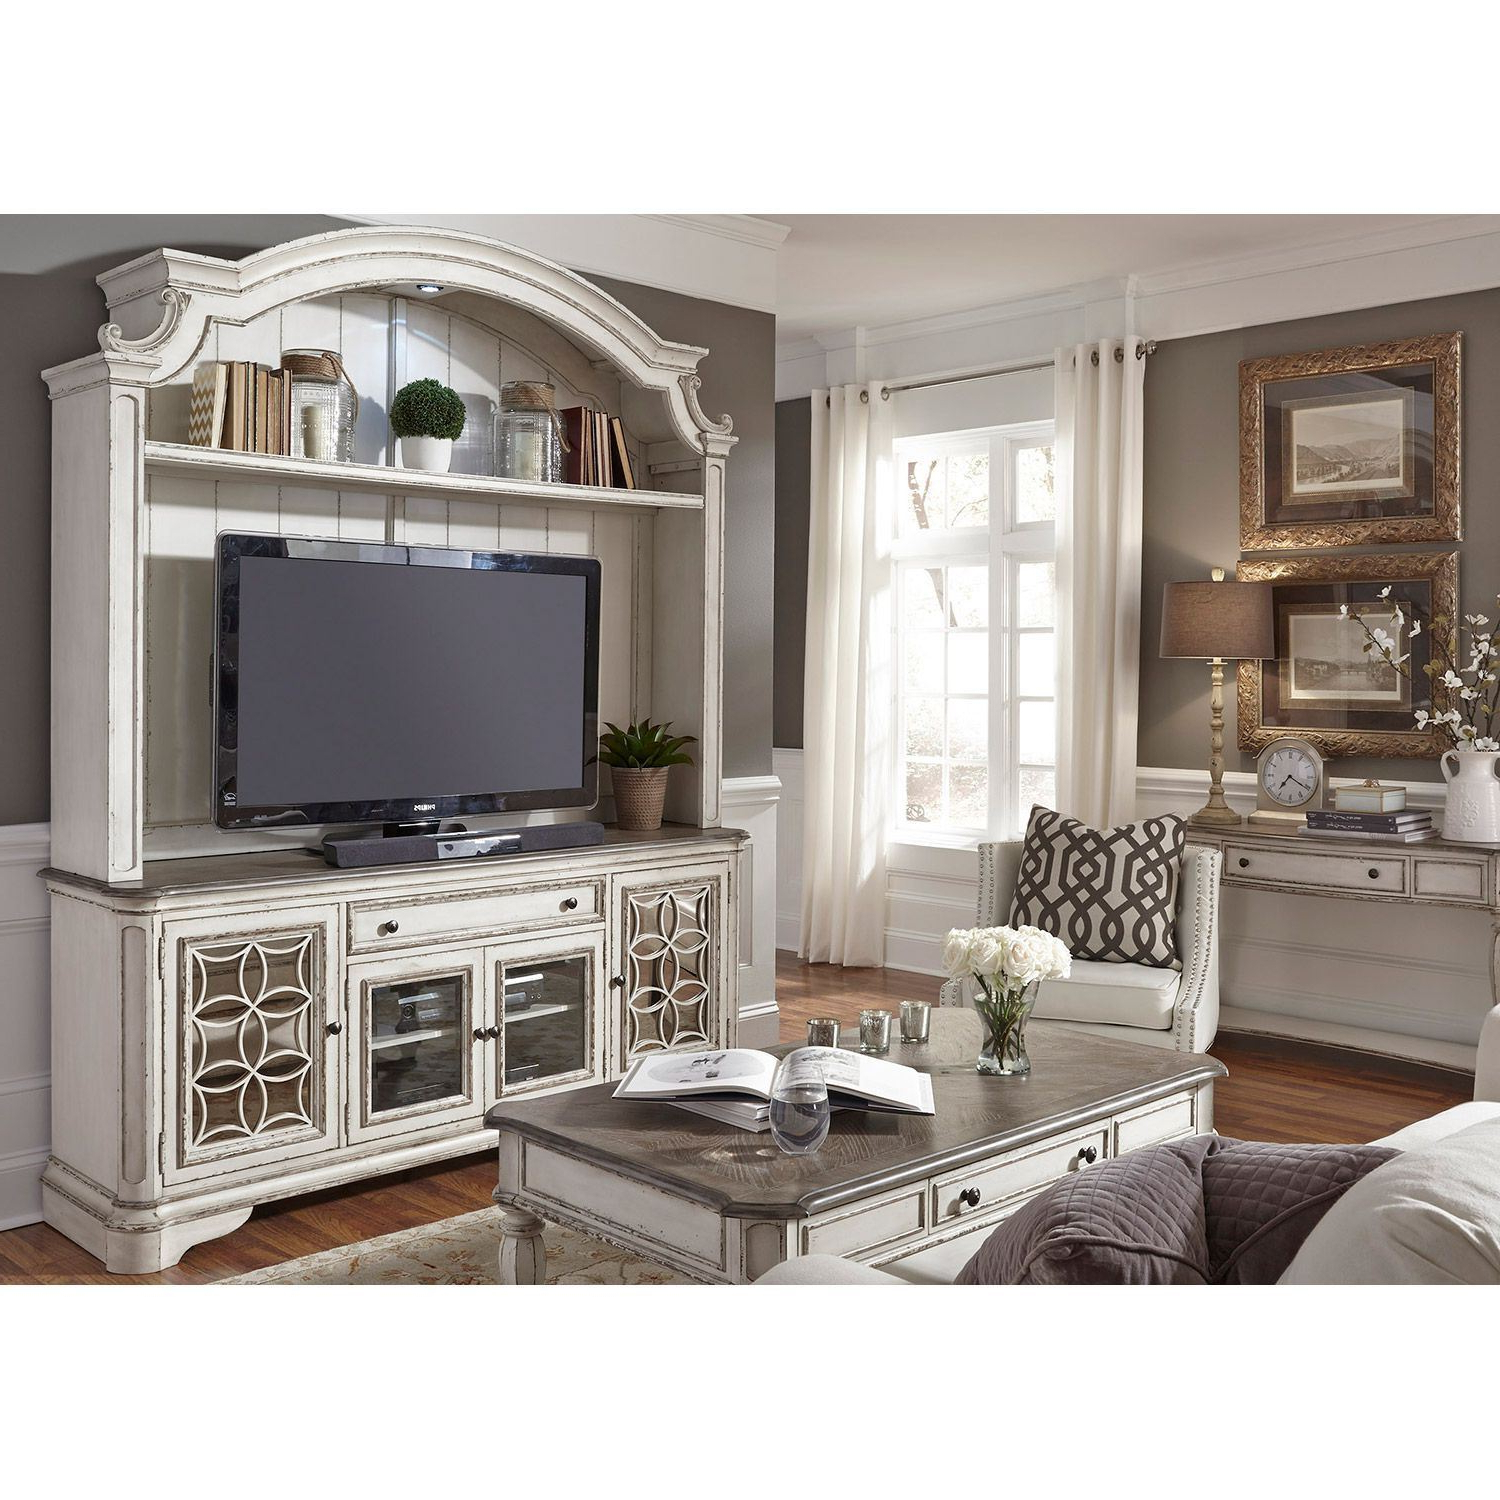 Widely Used Tv Hutch Cabinets With Magnolia Manor Tv Stand With Hutch (View 17 of 20)